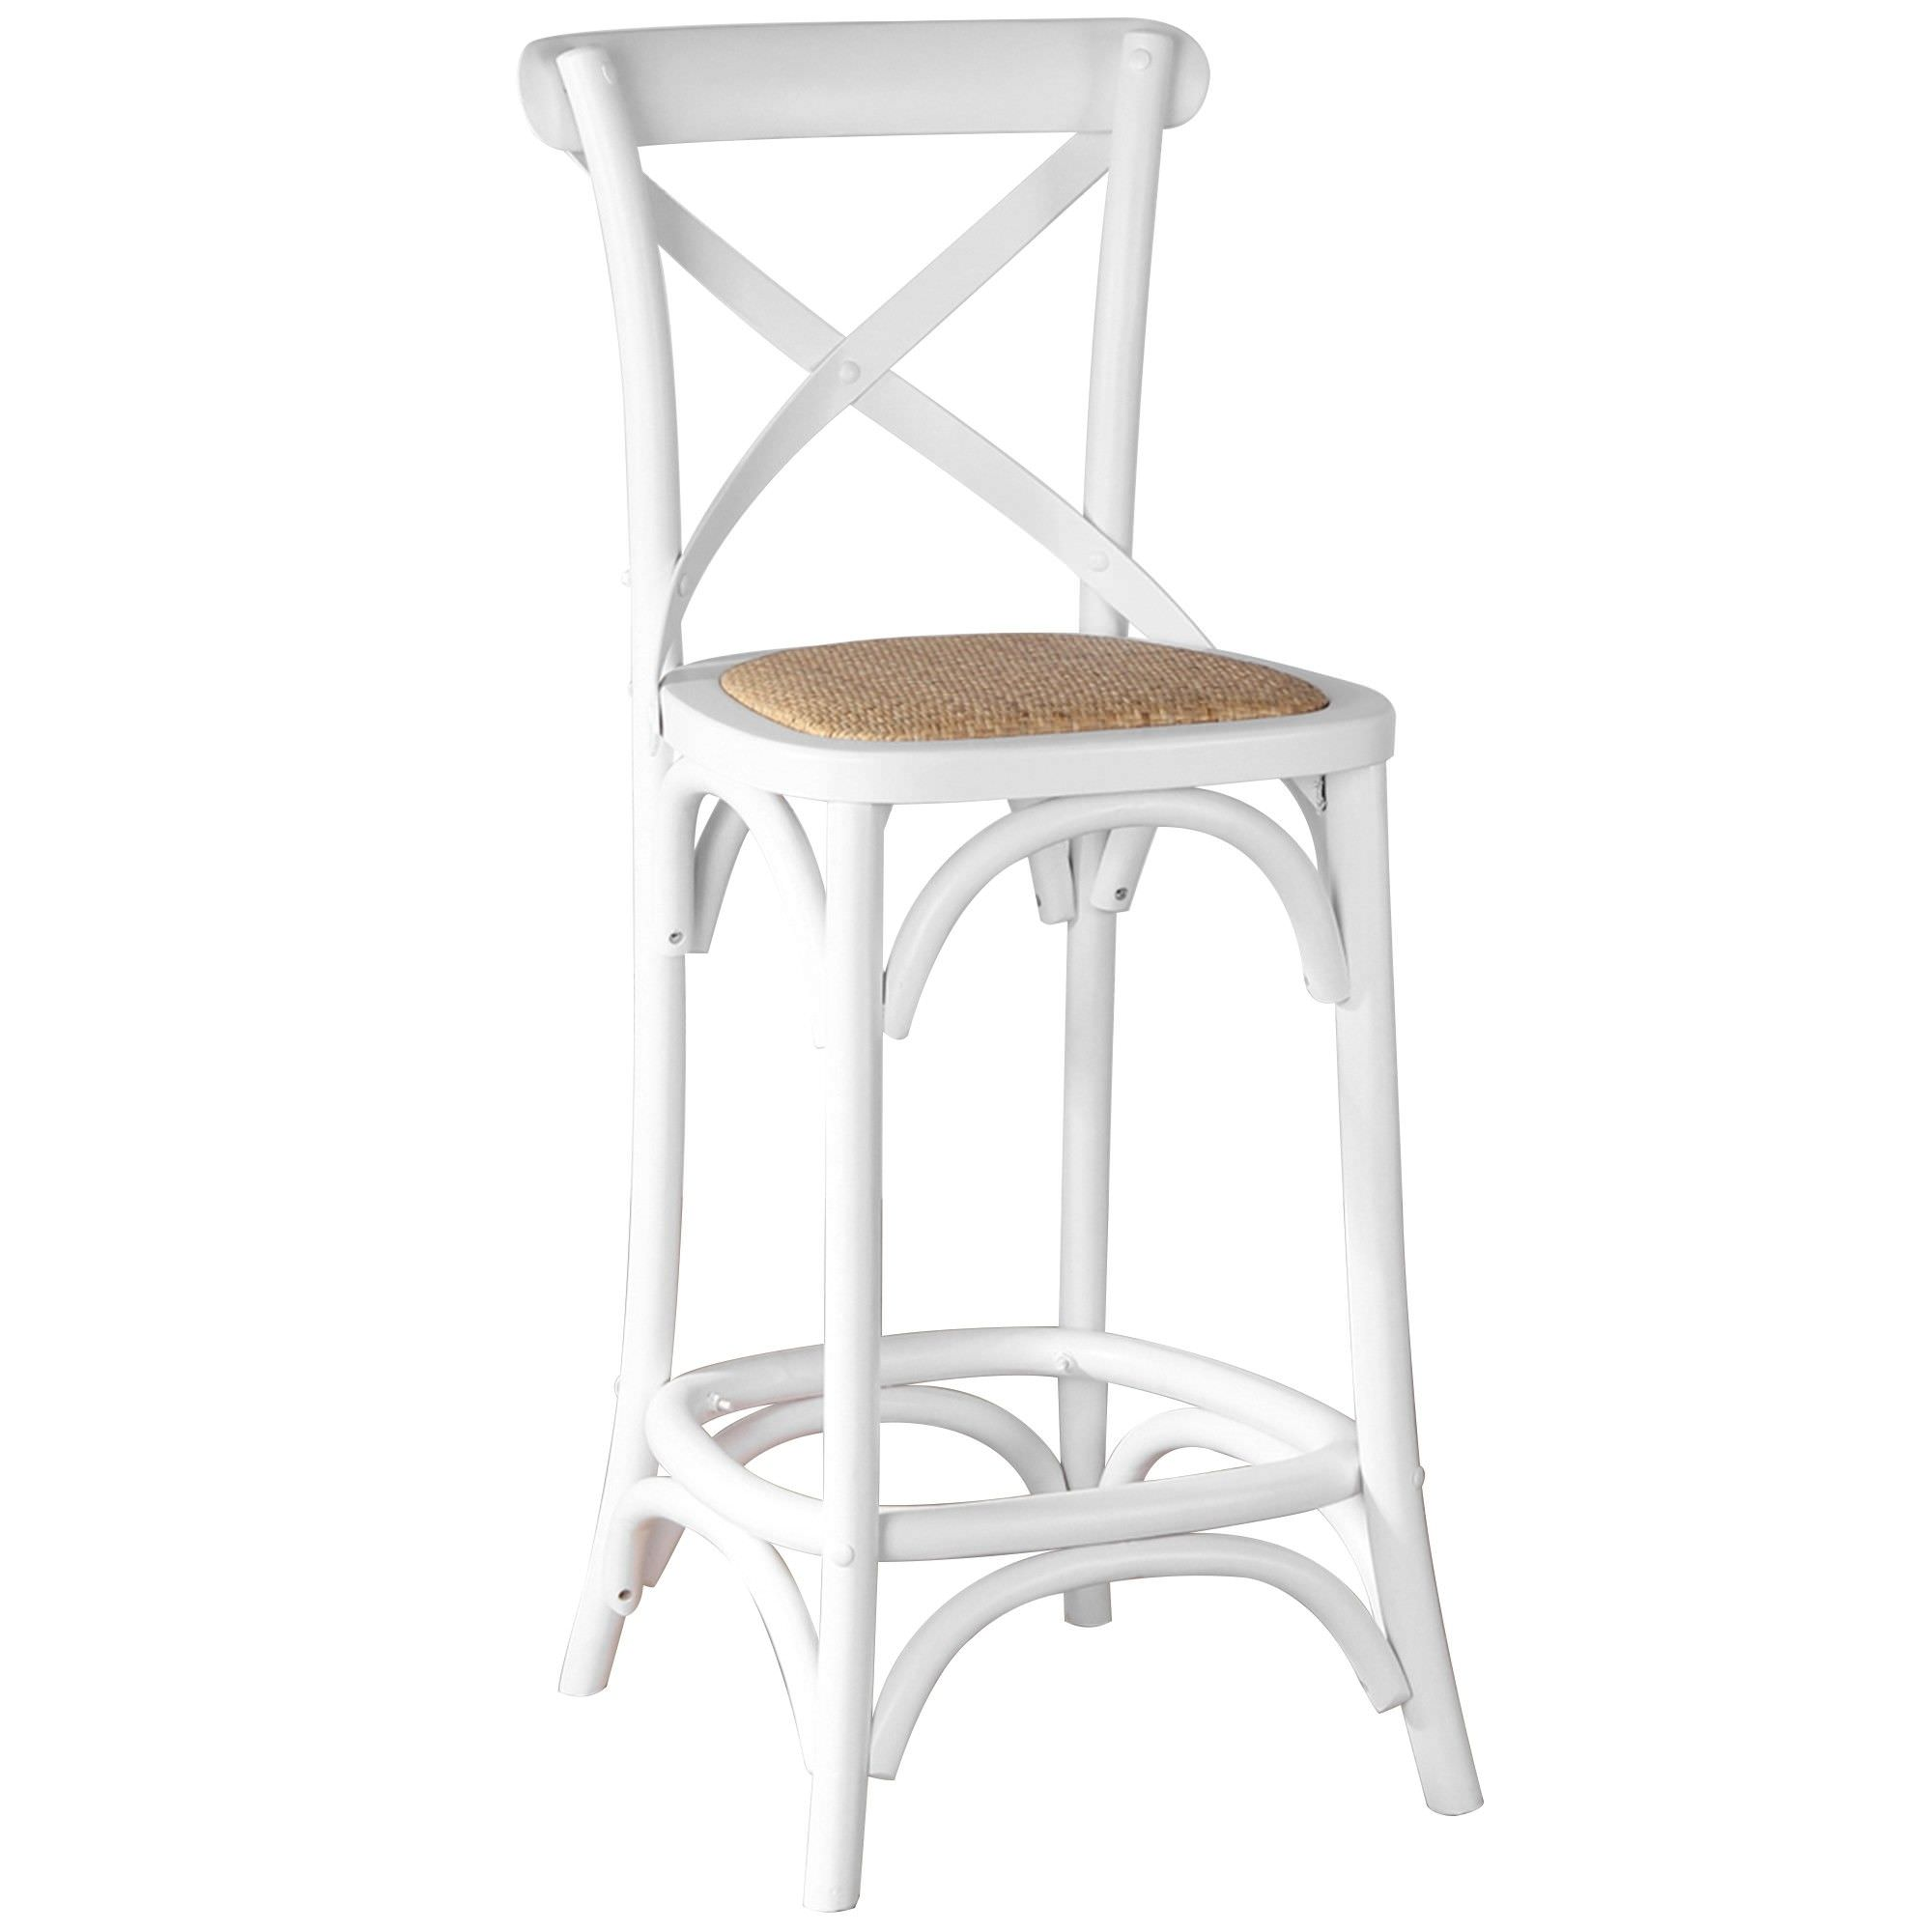 Sherwood Solid Oak Timber Cross Back Counter Chair with Rattan Seat, Distressed White